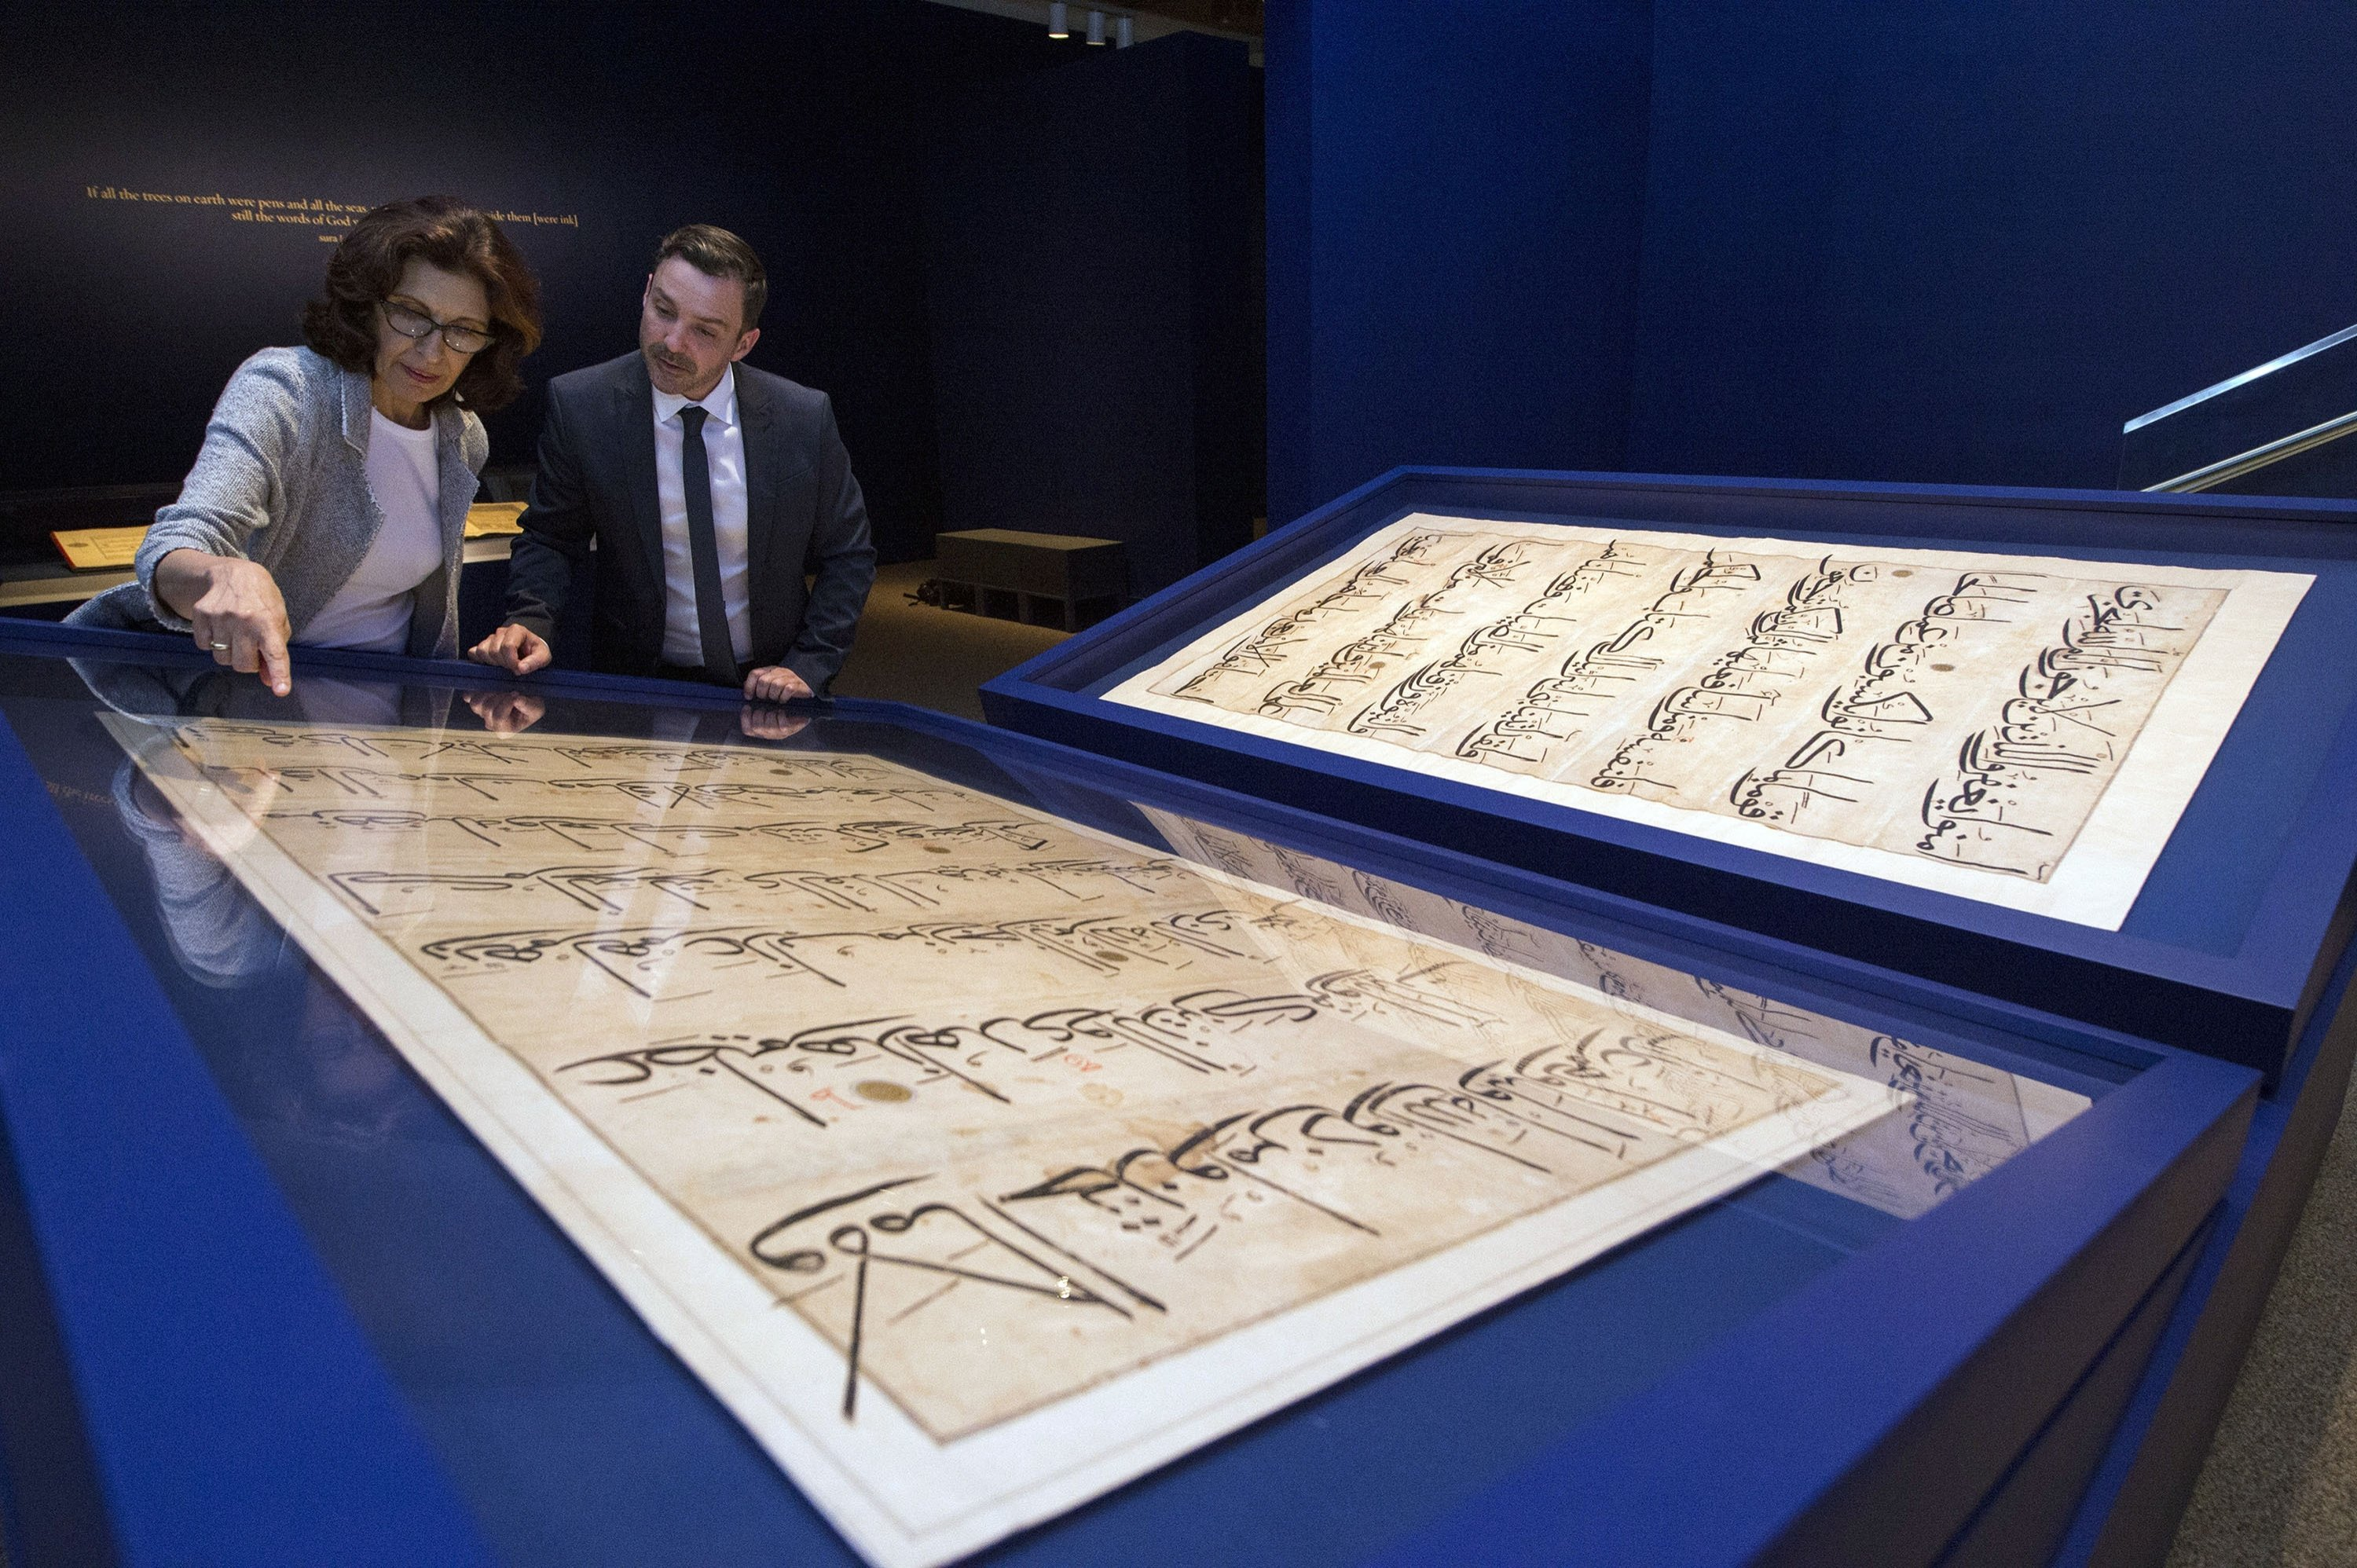 Curators of 'The Art of the Quran: Treasures from the Museum of Turkish and Islamic Arts' exhibit, look at pages from a 5-foot by 7-foot Quran, at the Sackler Gallery in Washington, U.S., Oct. 20, 2016. (AP Photo)